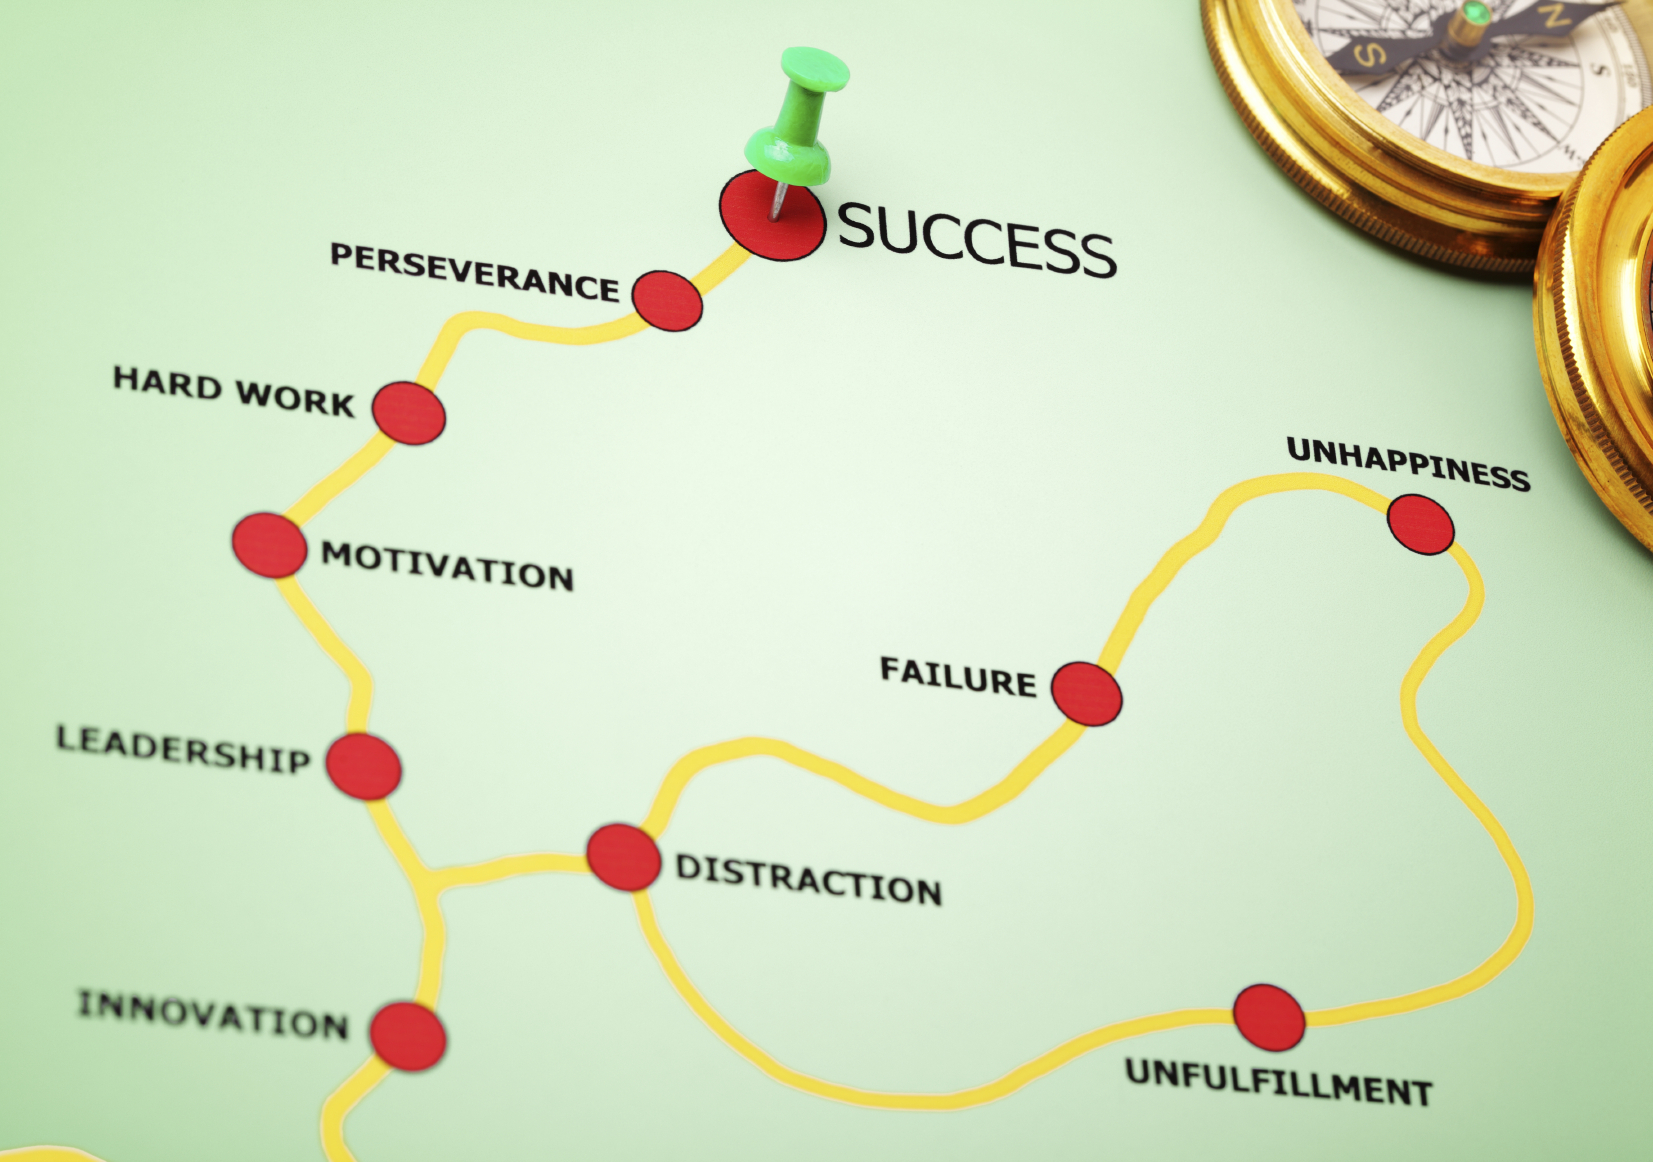 A good business plan is a roadmap for success